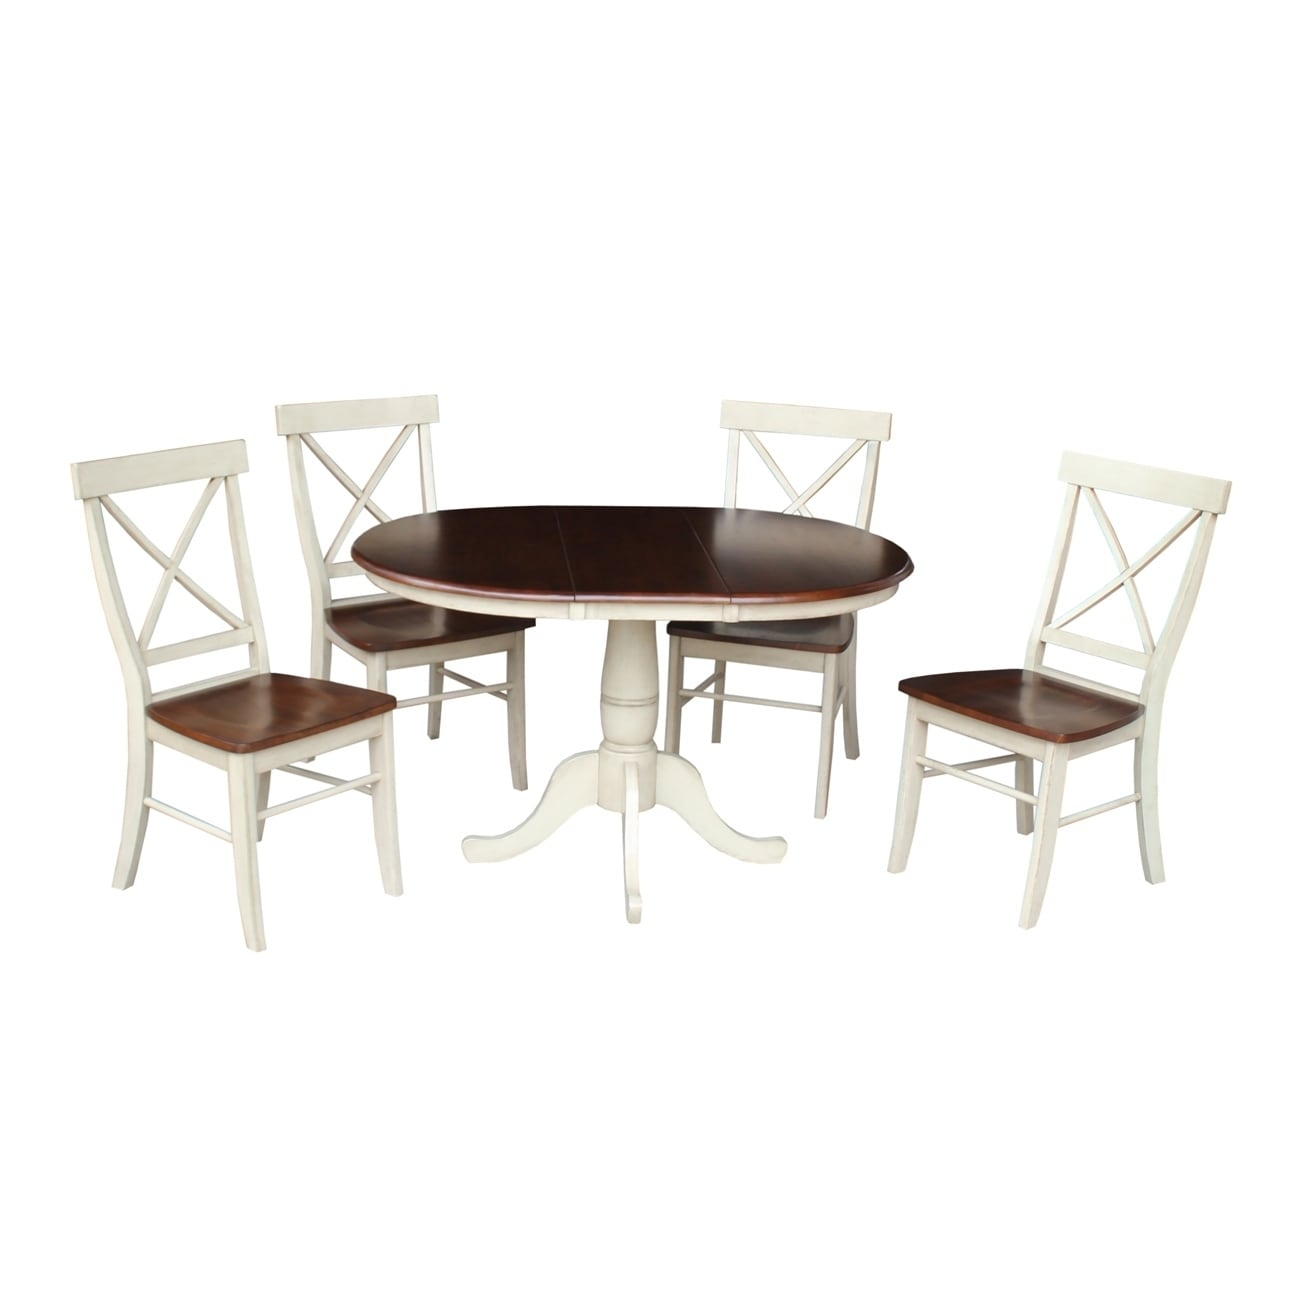 International Concepts Extension Dining Table with 4 X-ba...